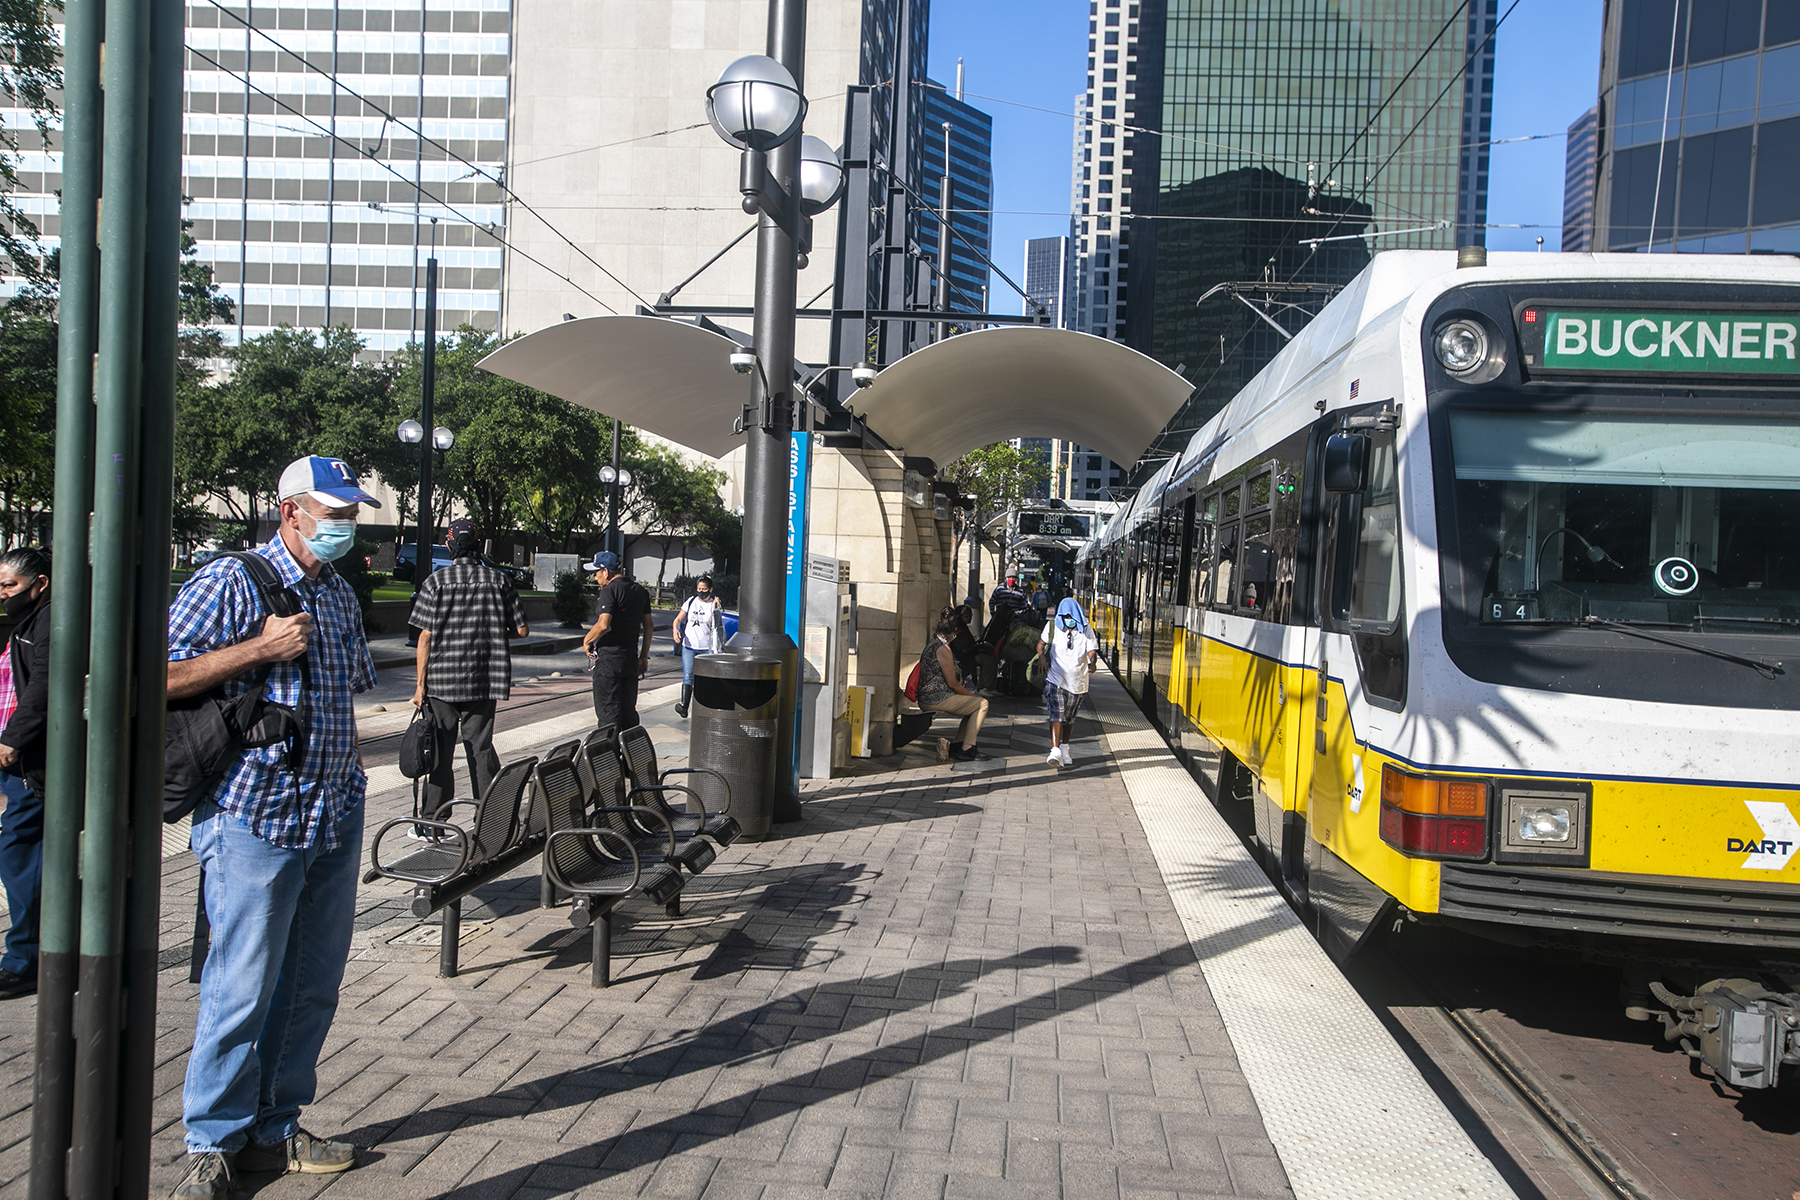 Green Line train stops for passengers at Pearl/Arts District Station.